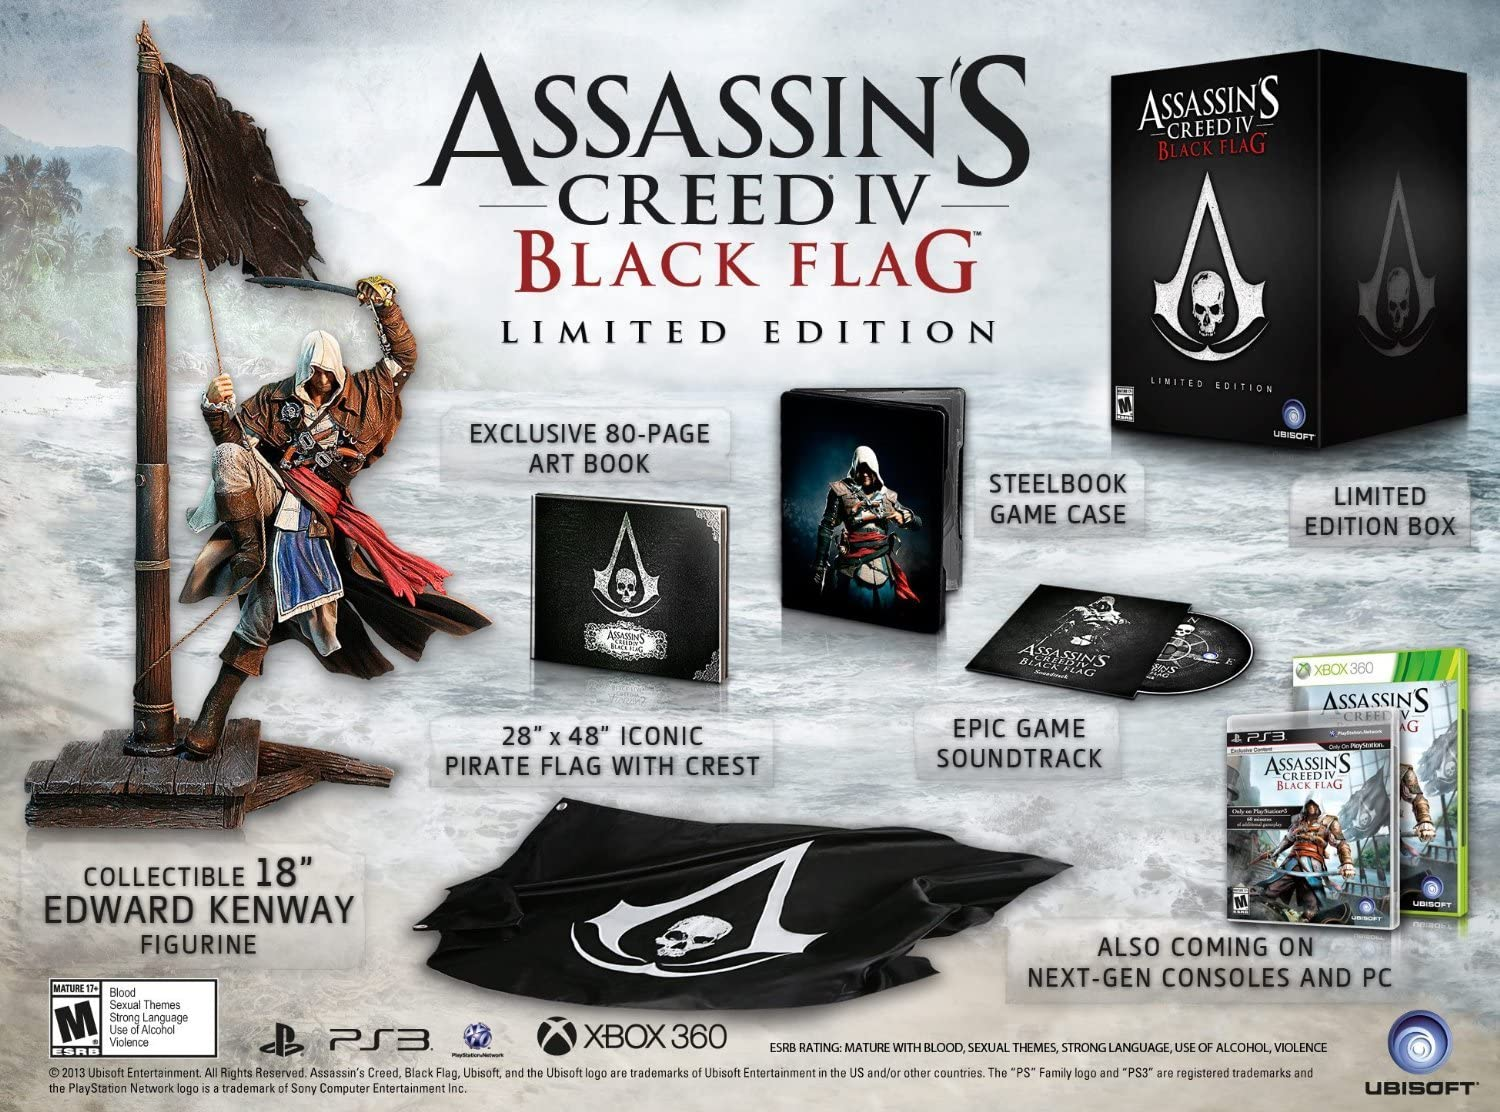 Assassins Creed IV: Black Flag - Limited Edition by Ubisoft: Amazon.es: Videojuegos